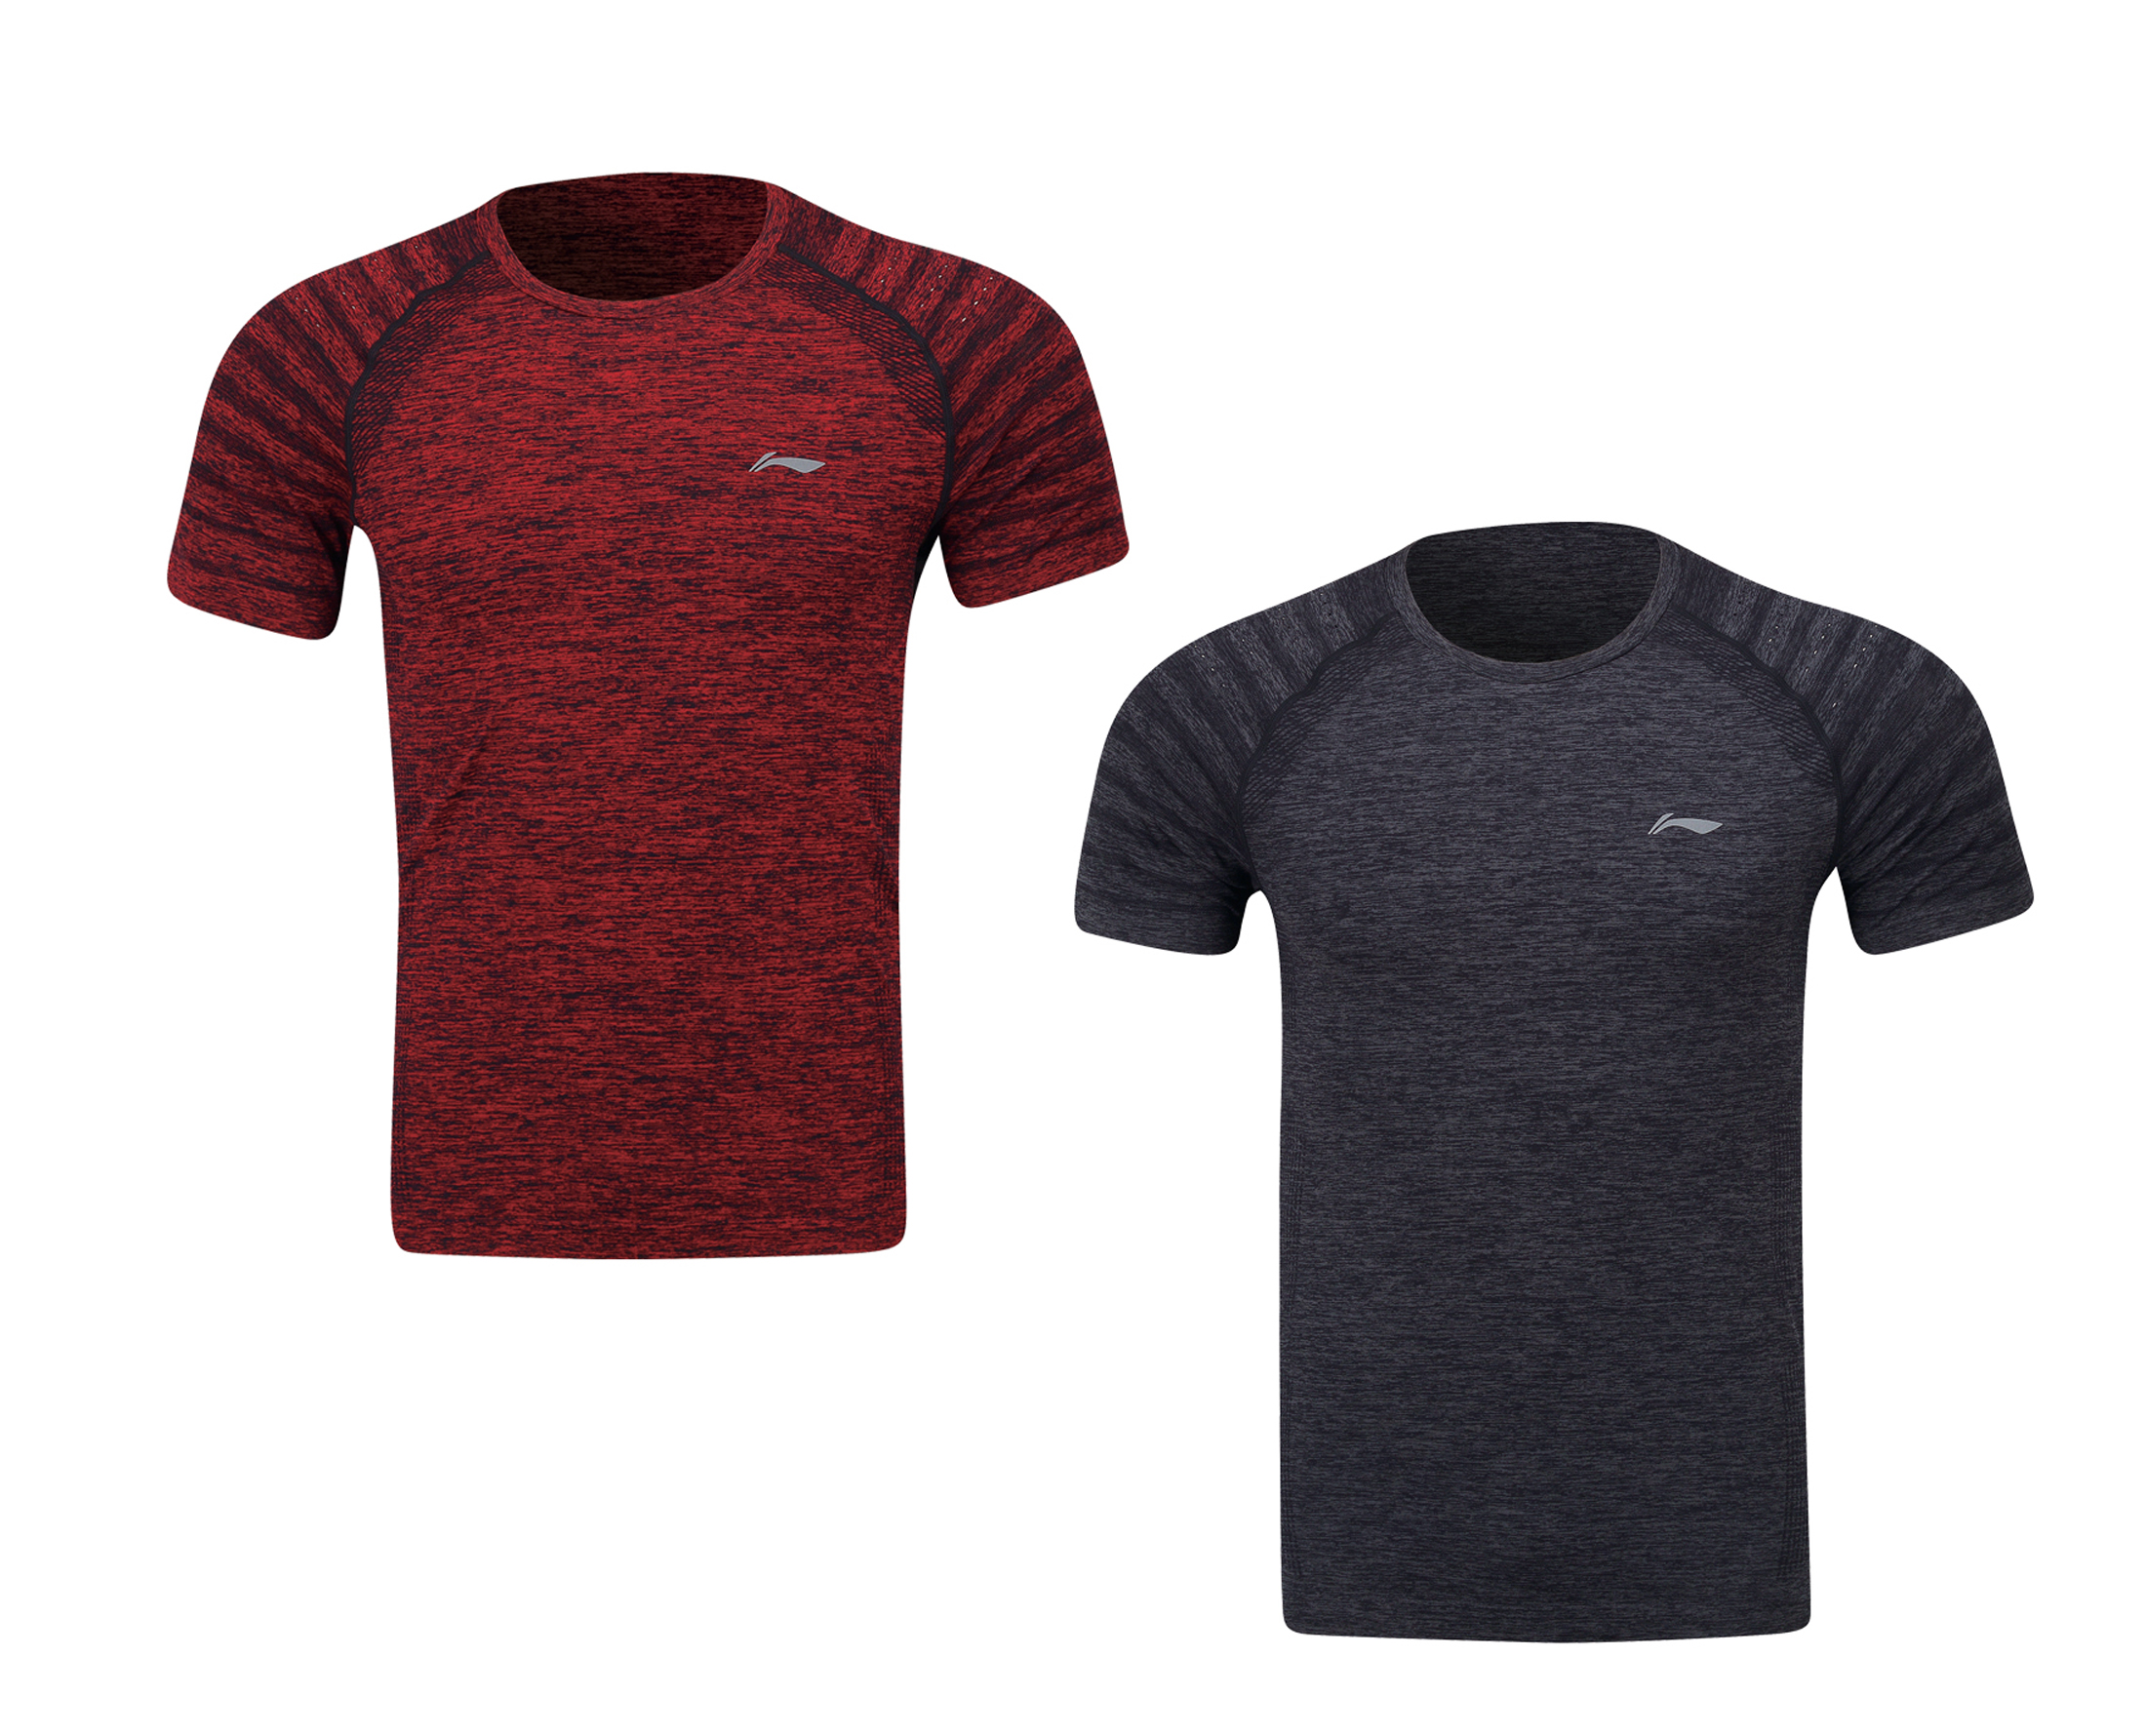 Badminton Clothes Men S T Shirt Red Grey Li Ning Badminton Superstore